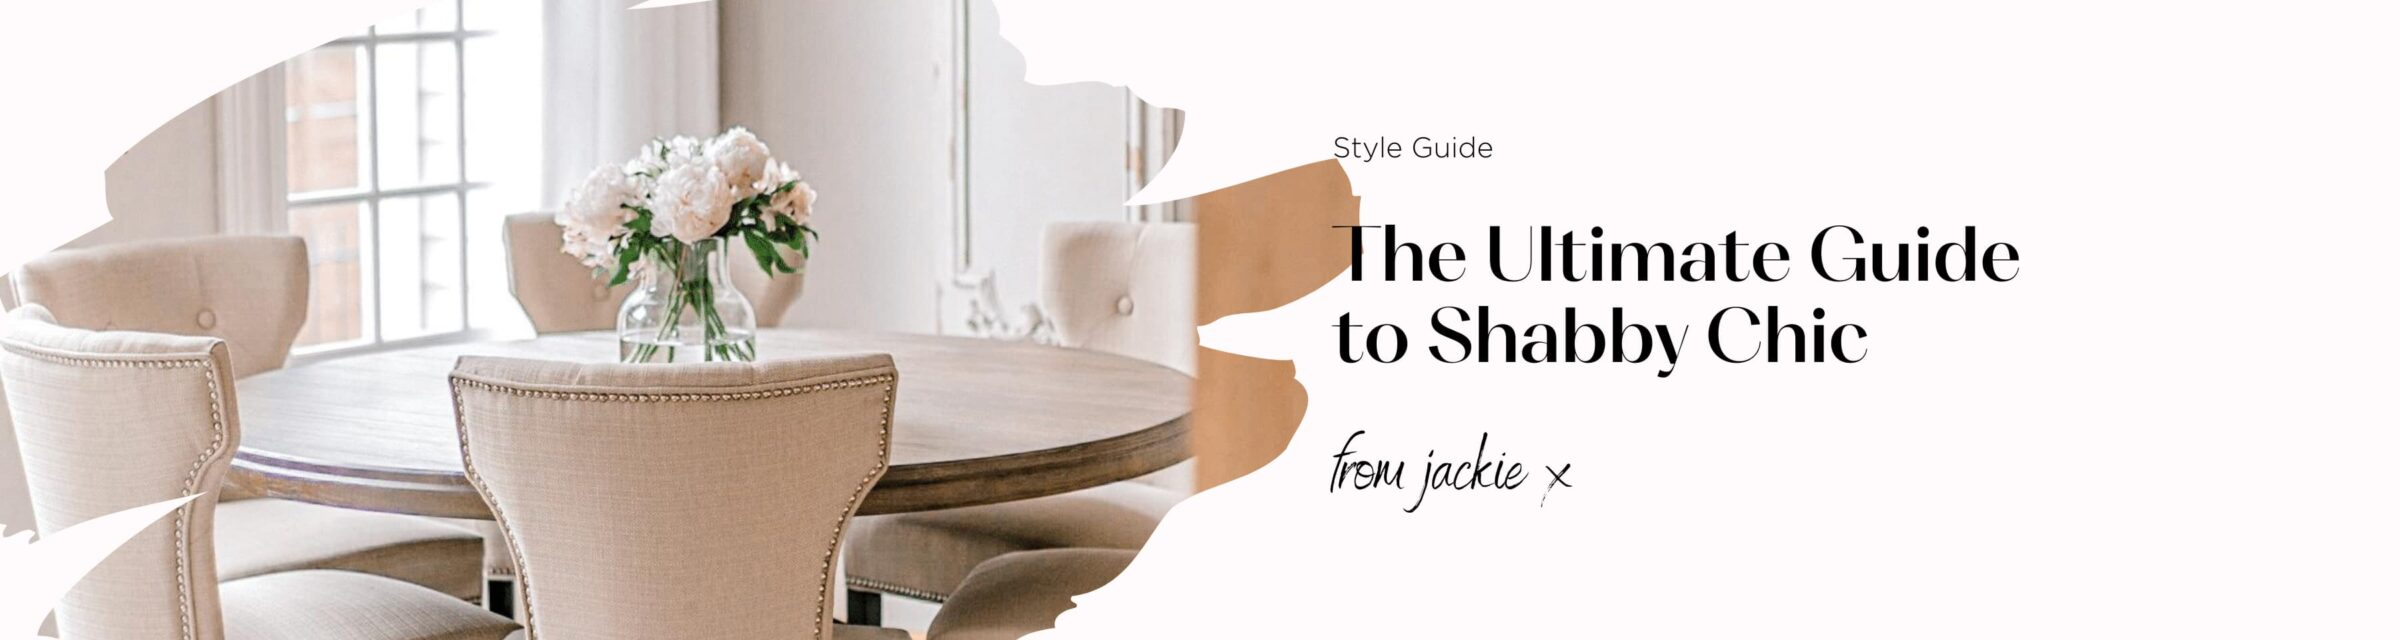 Shabby Chic Guide Ad